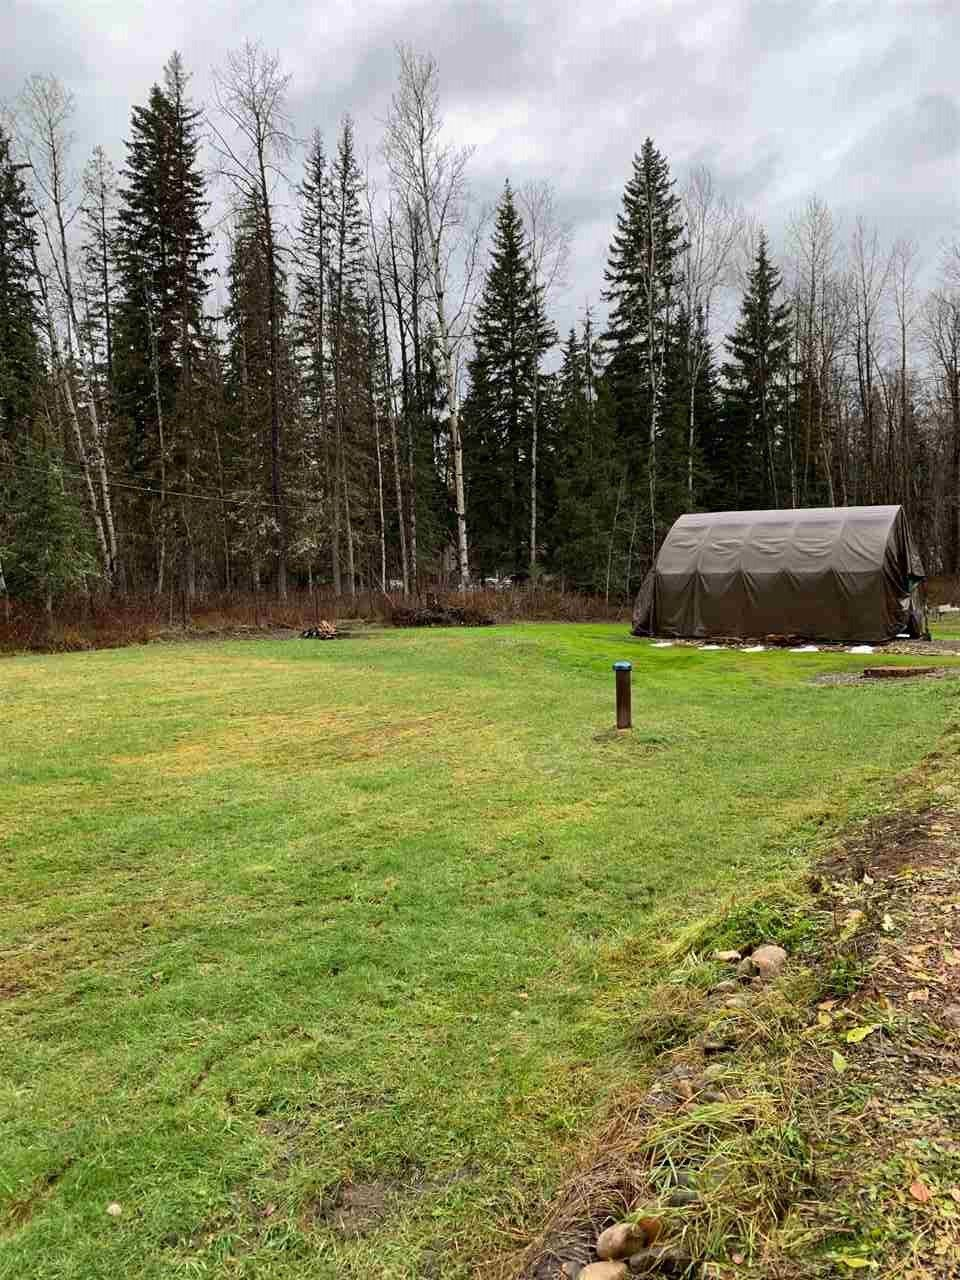 Photo 14: Photos: 4850 SALMON VALLEY Road in Prince George: Salmon Valley House for sale (PG Rural North (Zone 76))  : MLS®# R2509615